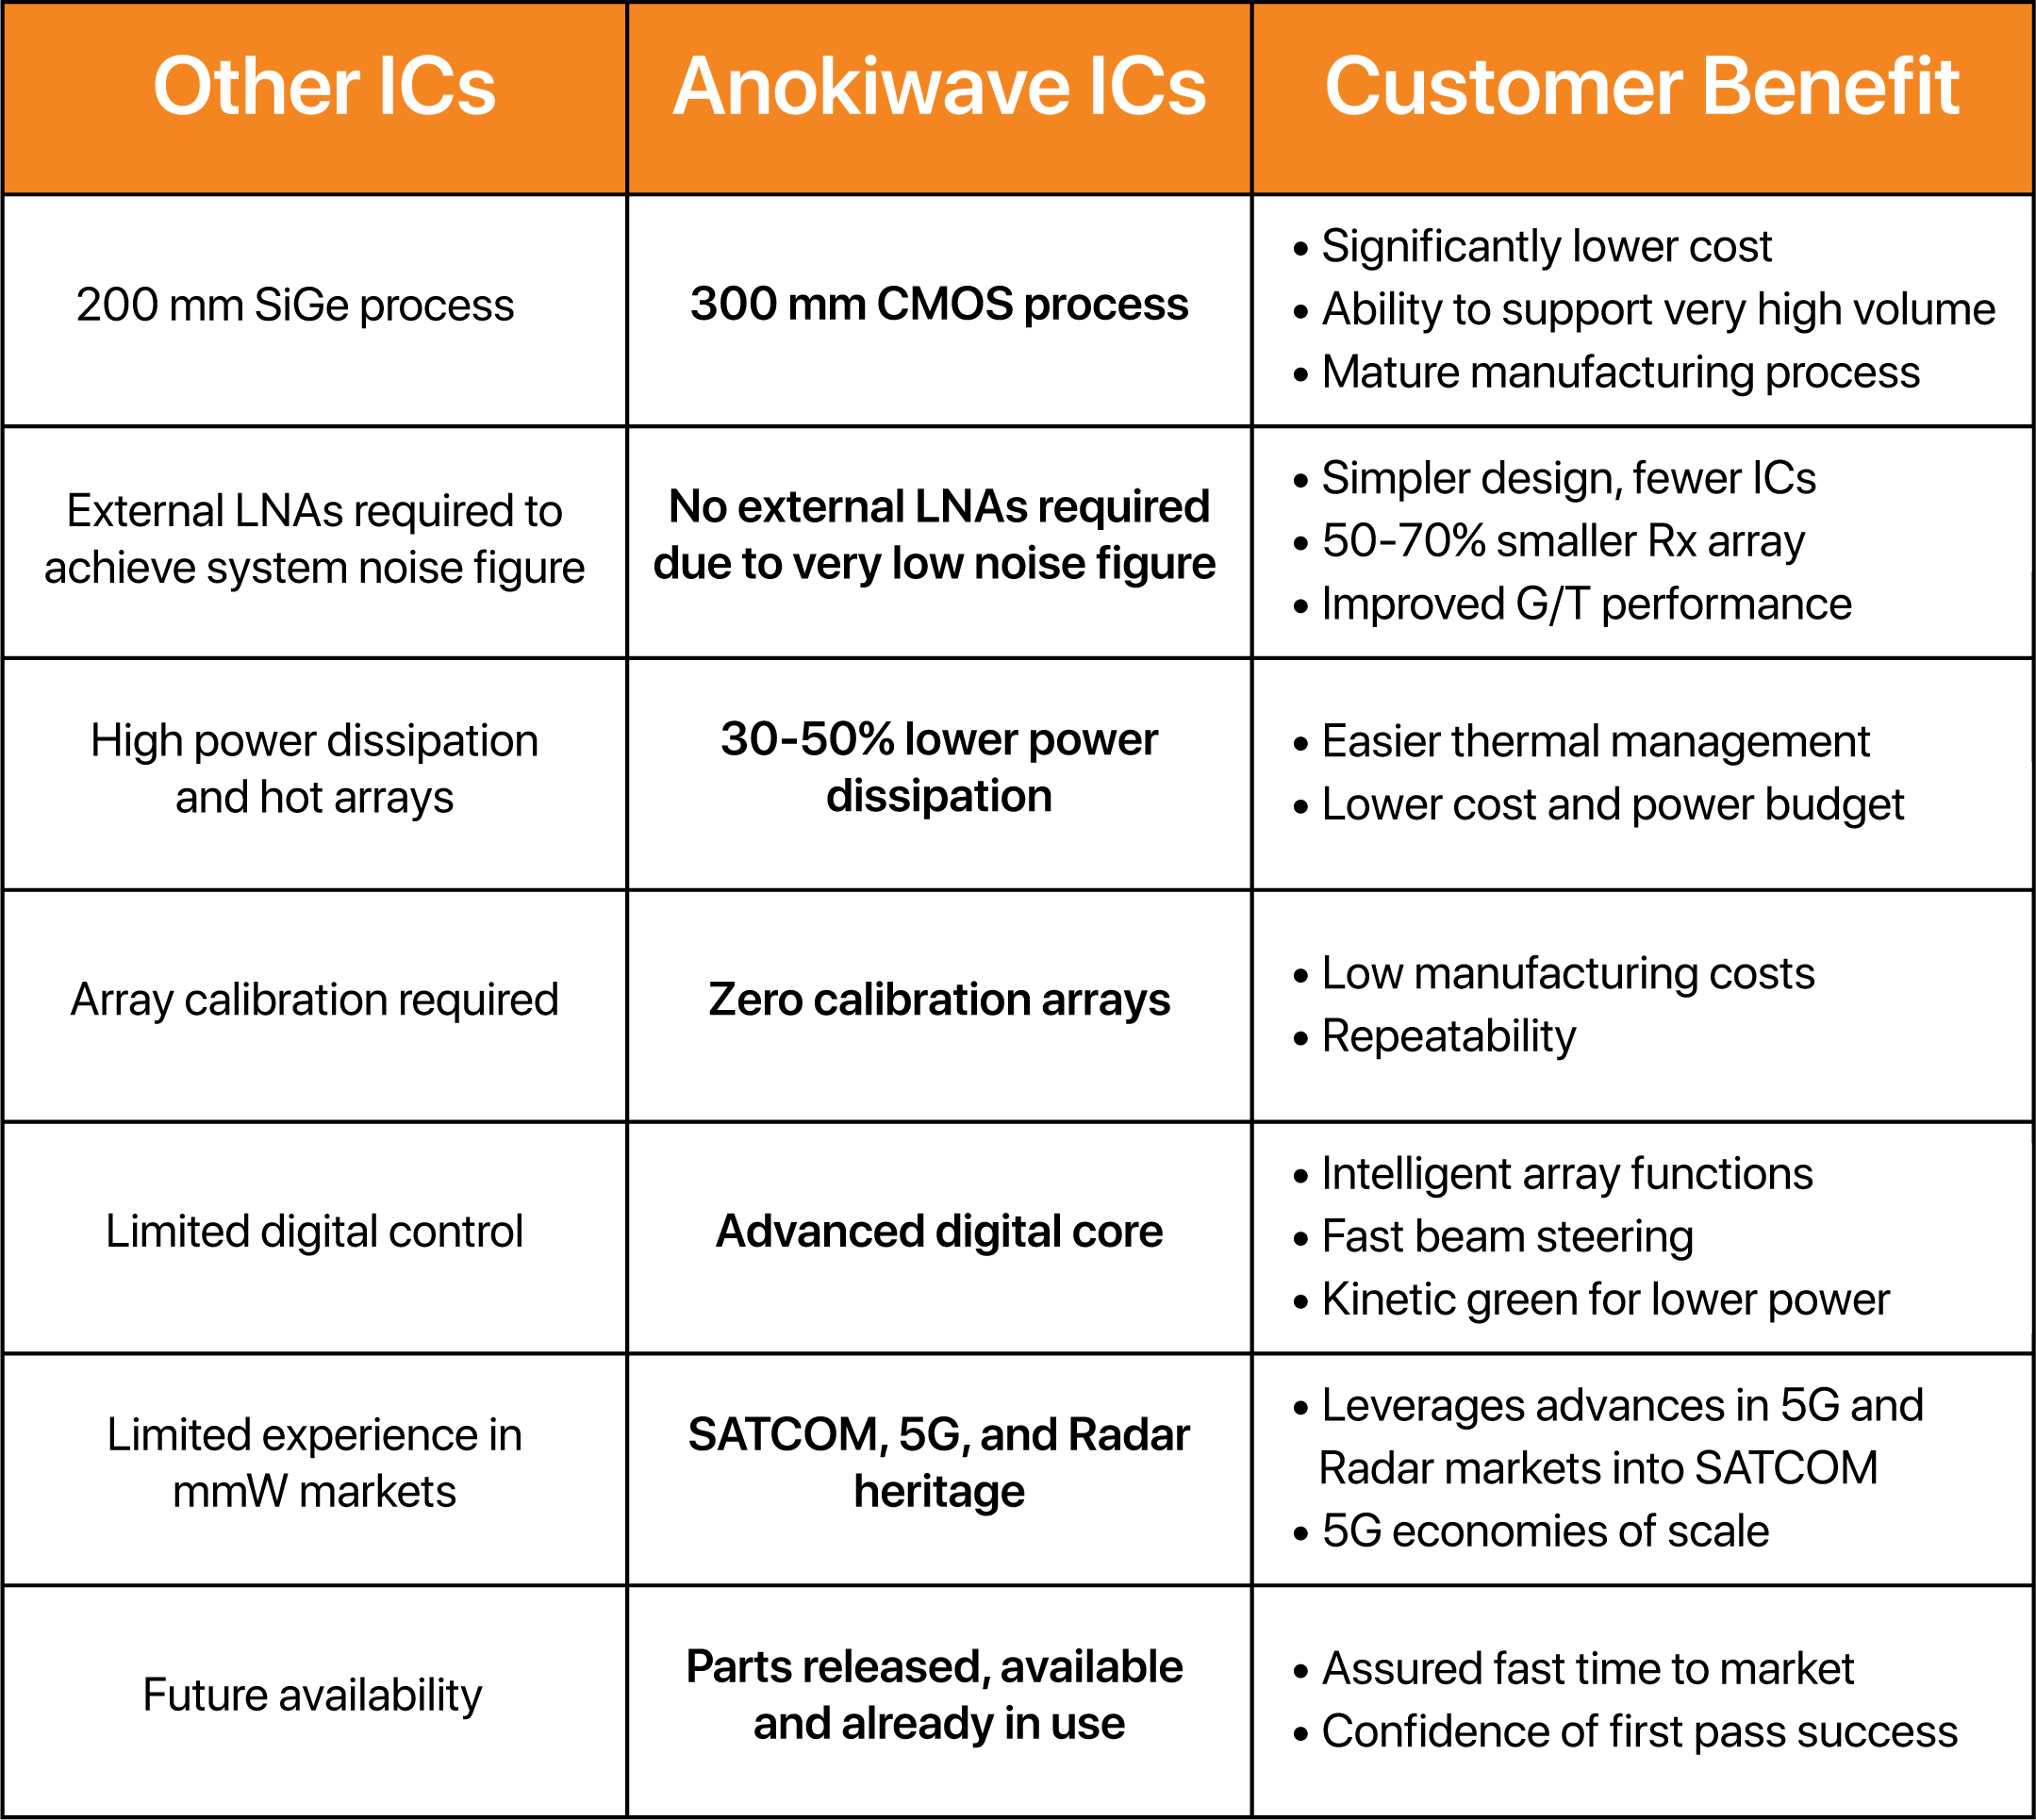 Anokiwave comparison table